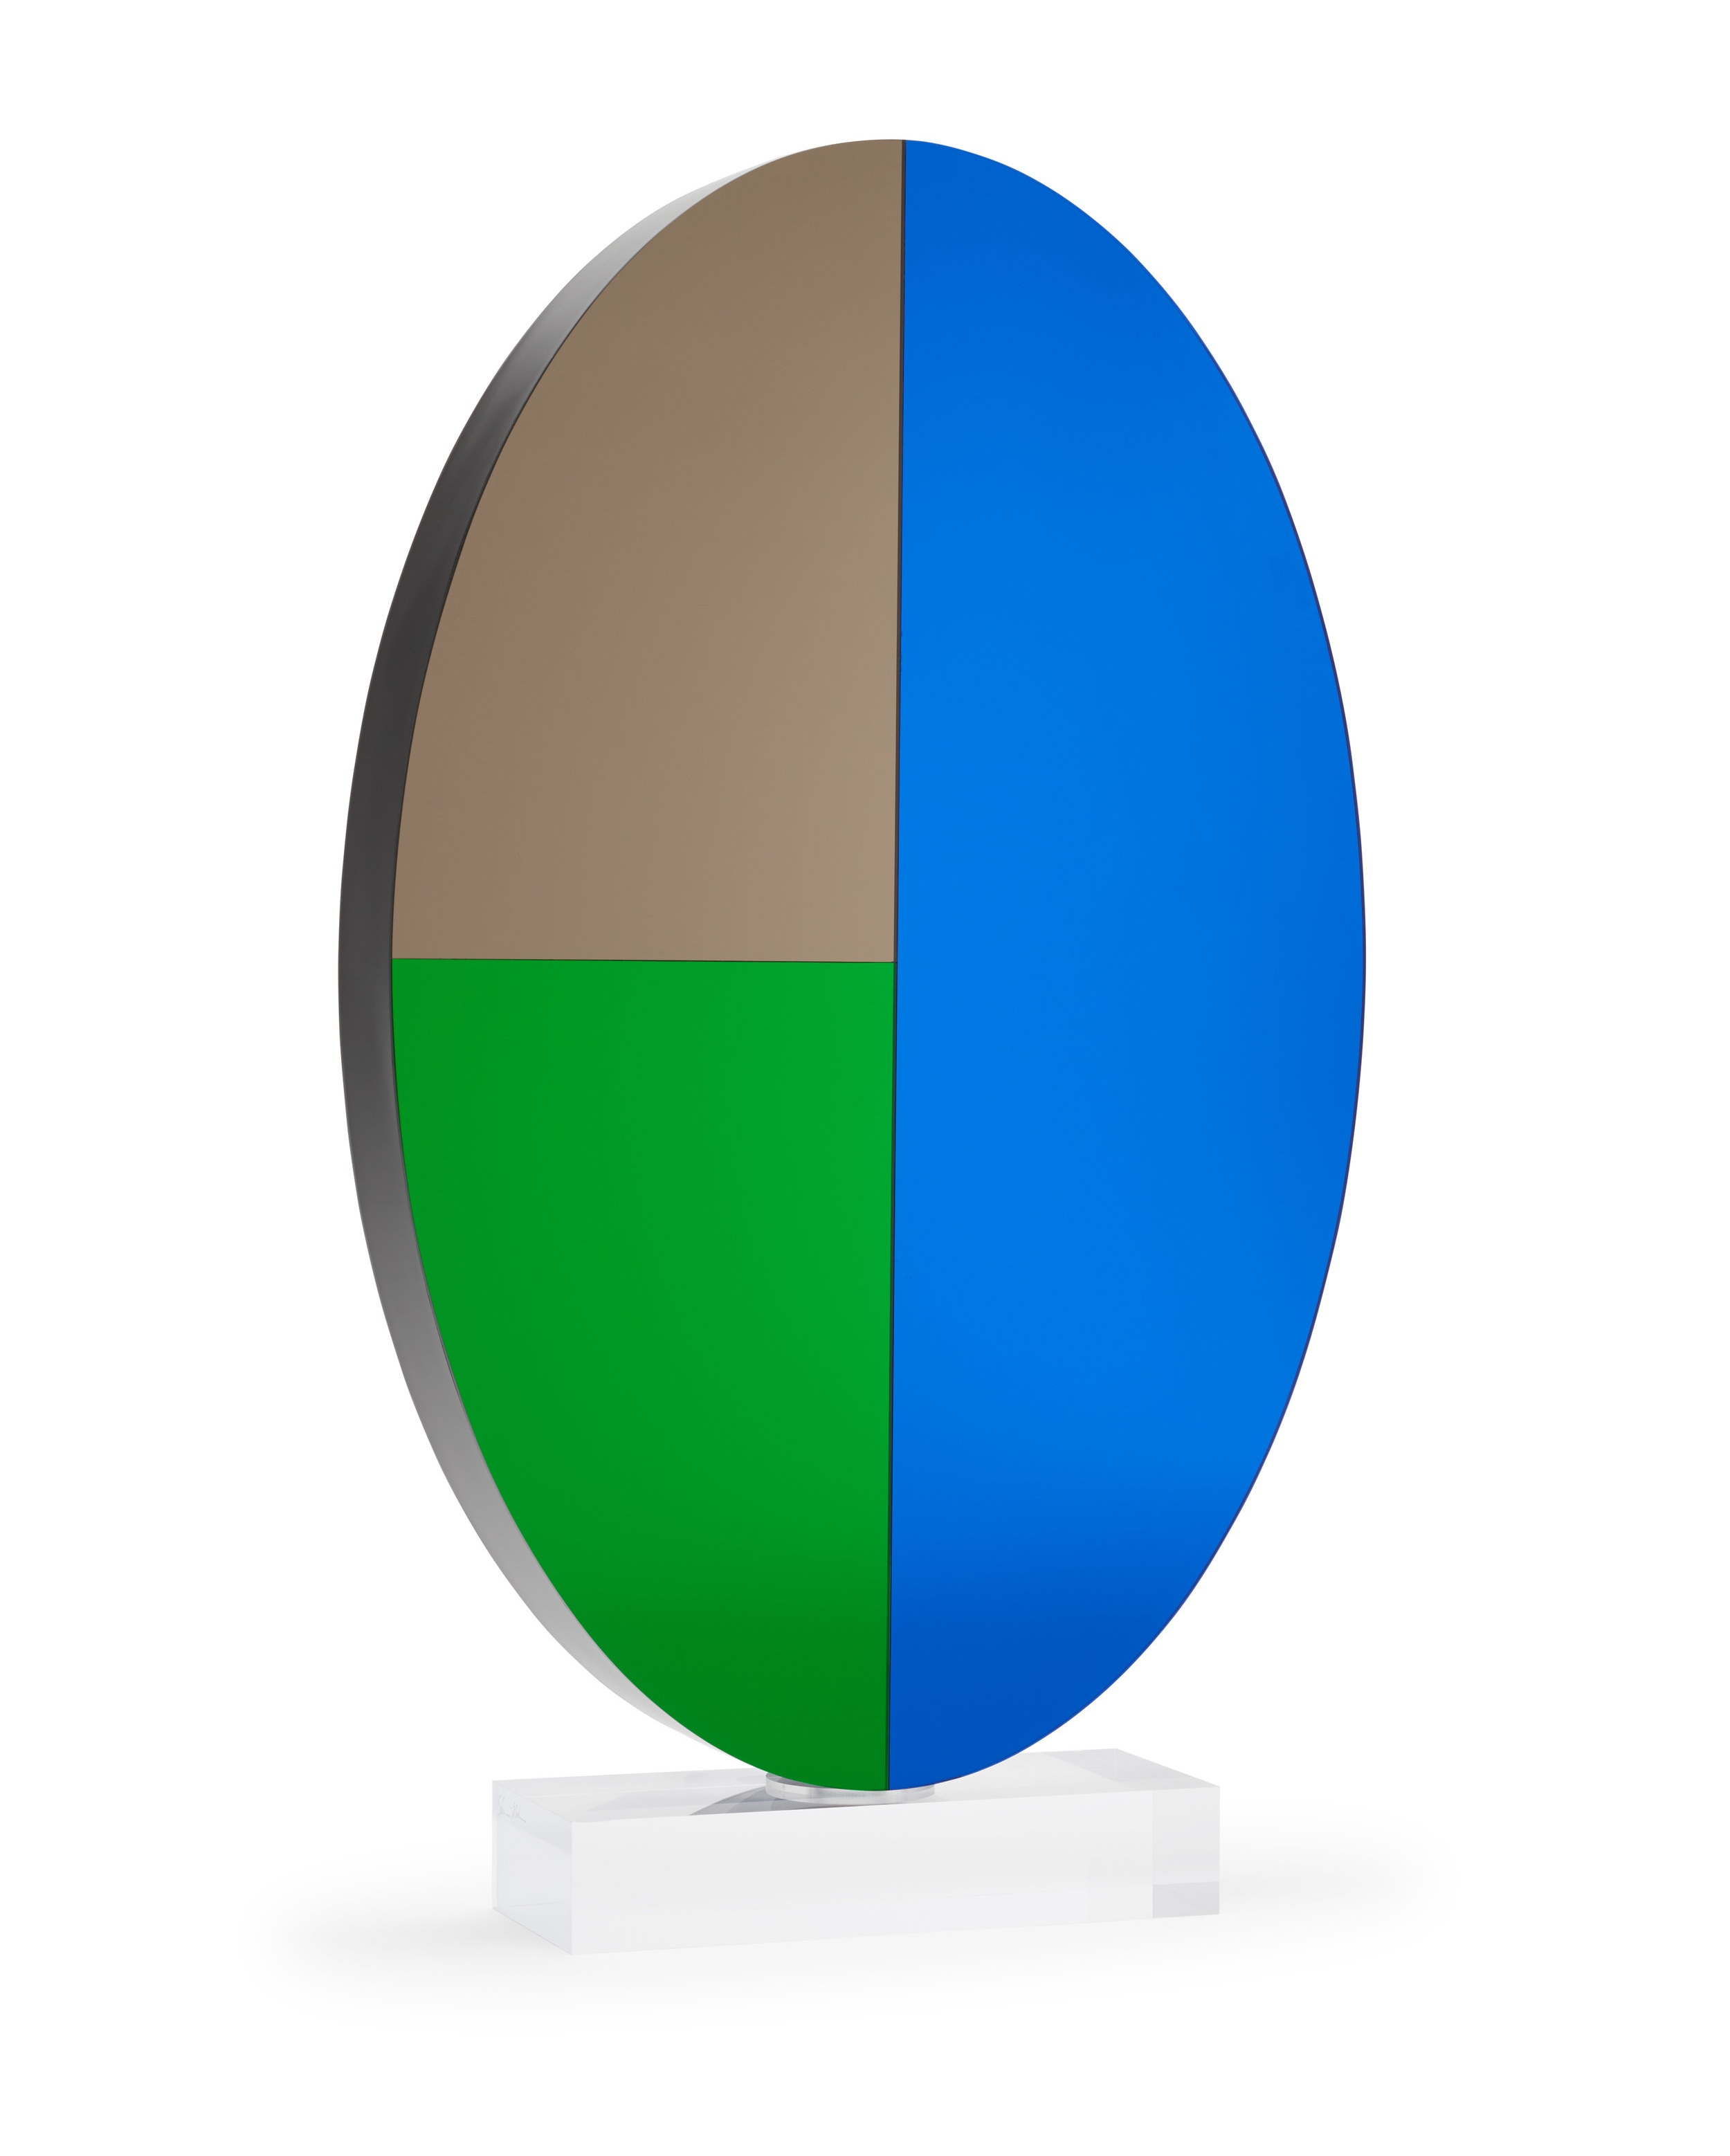 11_ShanaMabari_LeukosPetal_Blue_Green_Bronze_Side1_Acrylic_Mirror_2018.jpg